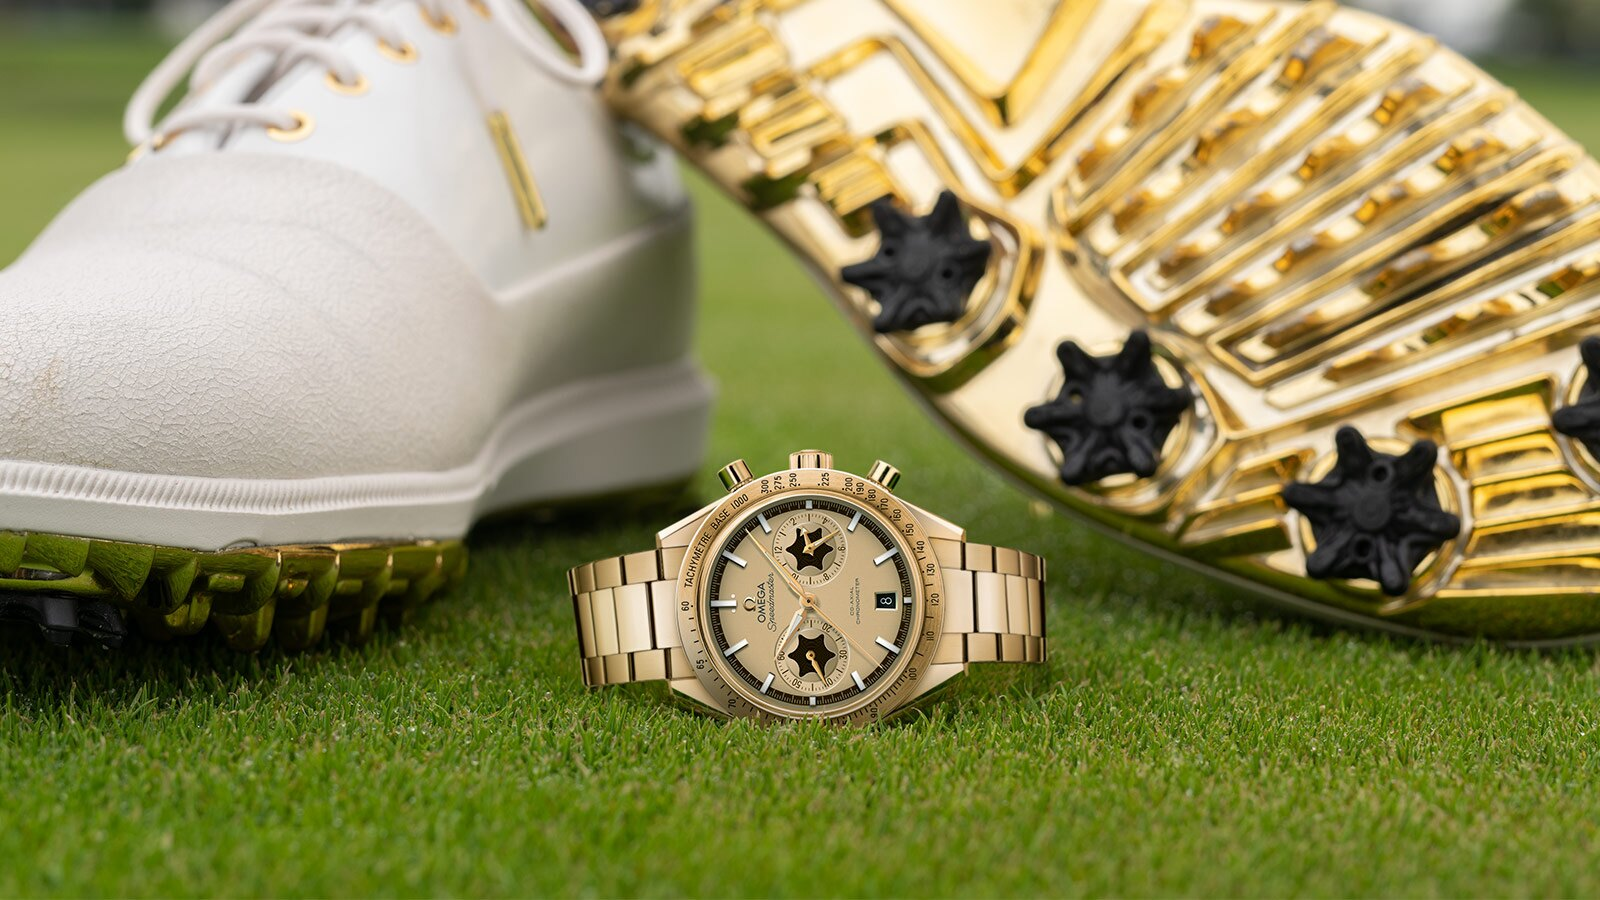 The champagne dials copy watches are made from 18k gold.